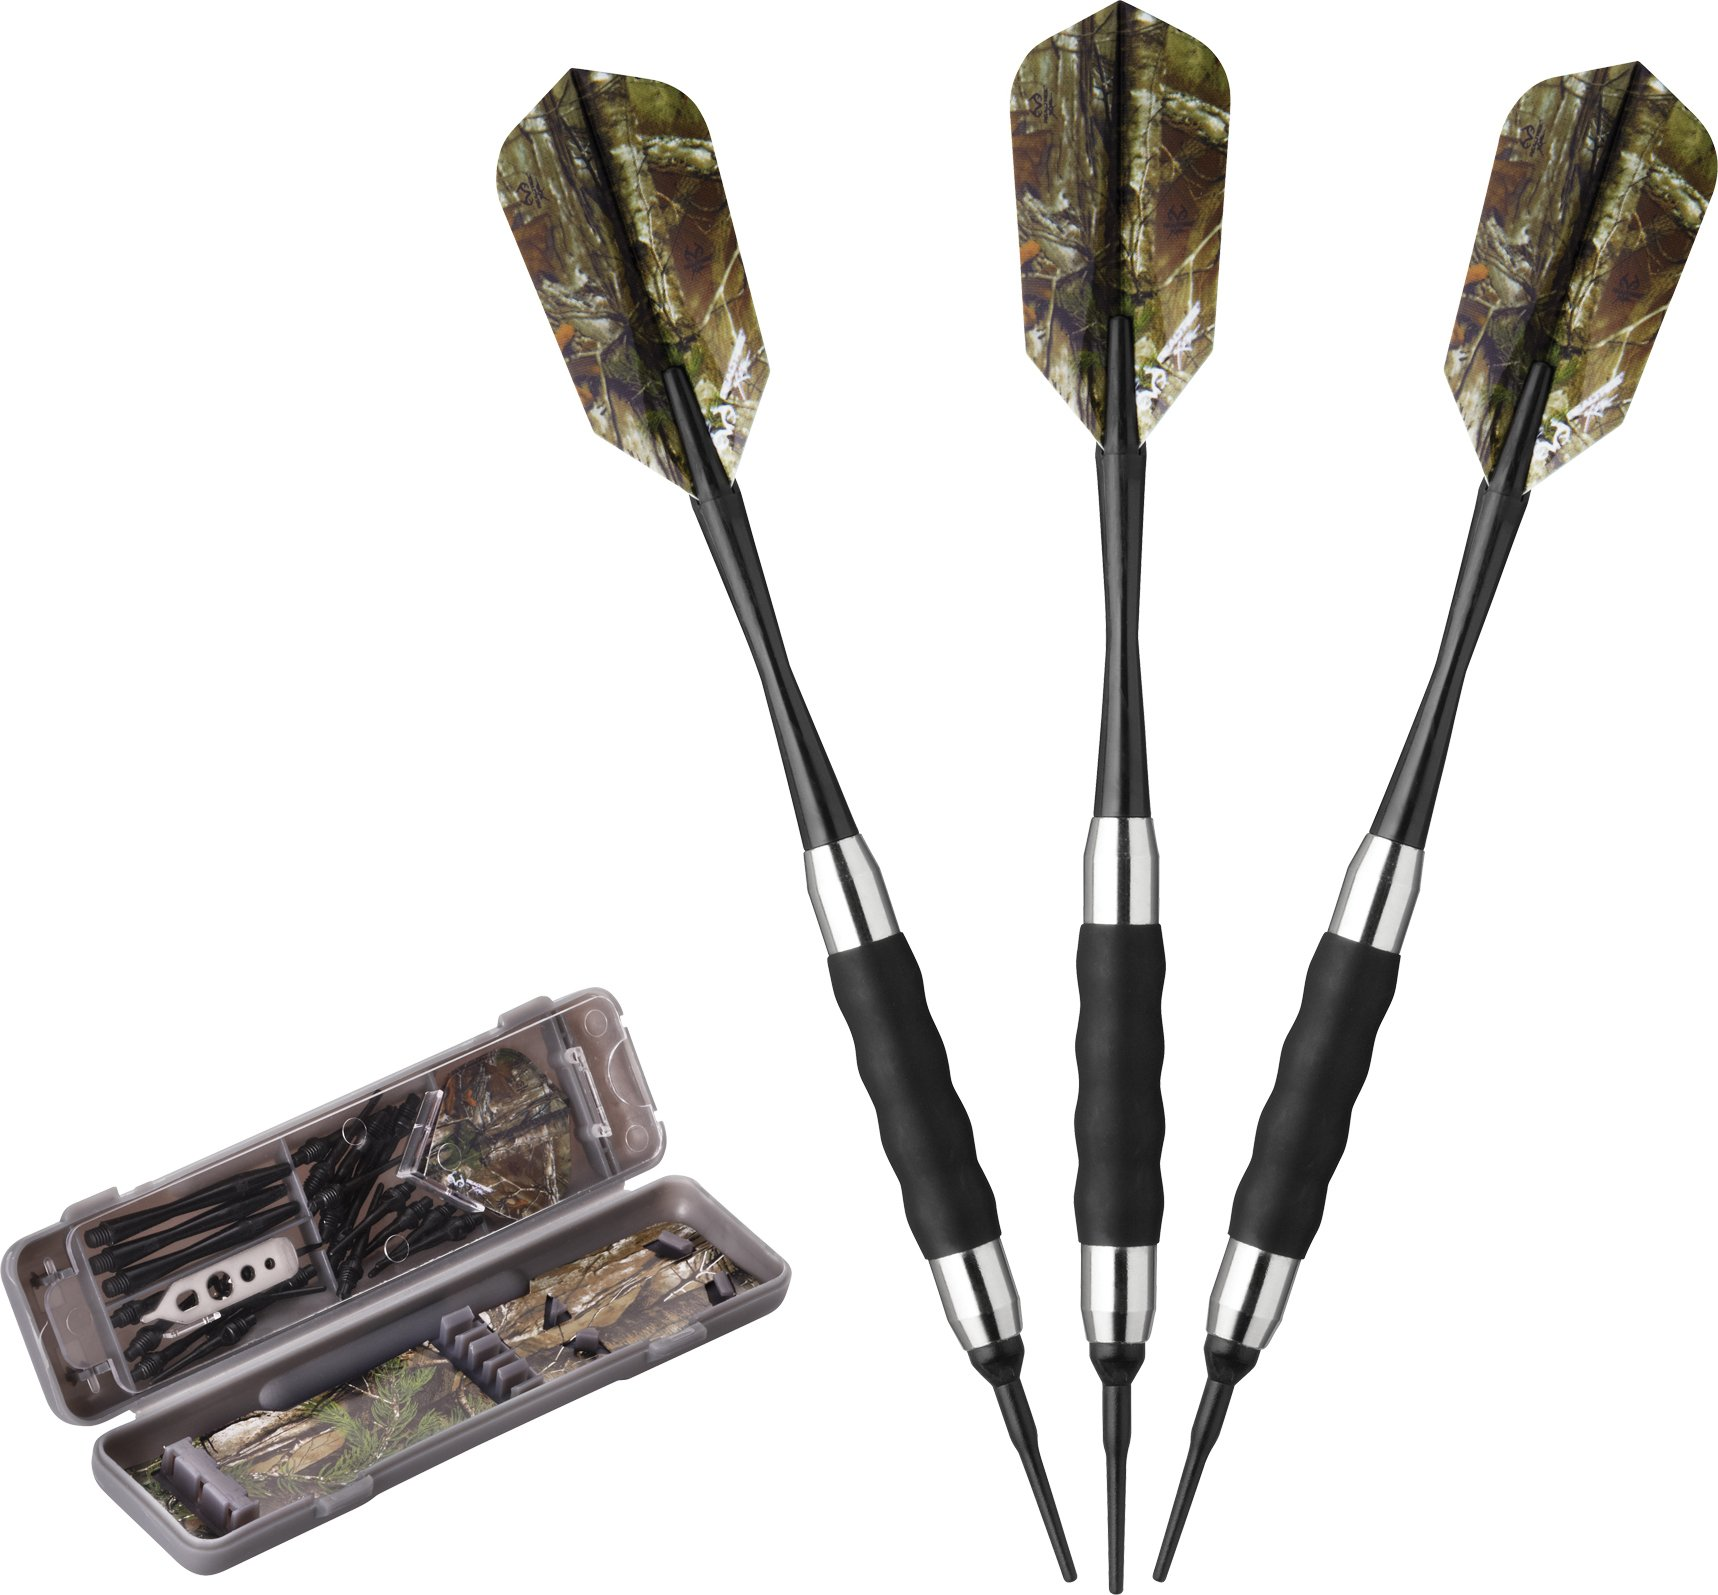 Fat Cat Realtree Hardwoods HD Camo Soft Tip Darts with Storage/Travel Case, 16 Grams by Fat Cat by GLD Products